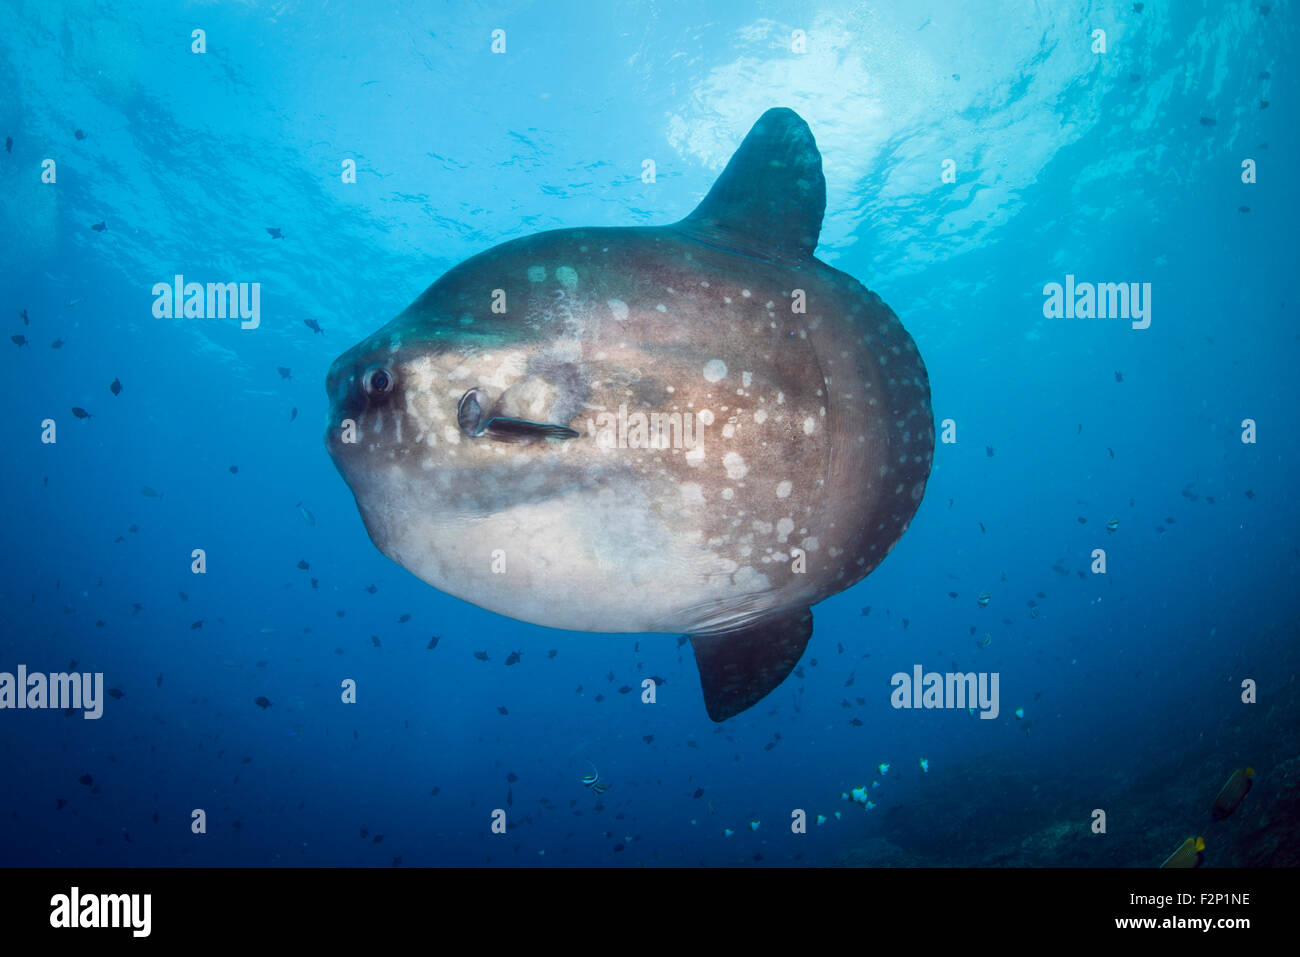 Mola Mola Fish Also Known As The Sunfish From Bali